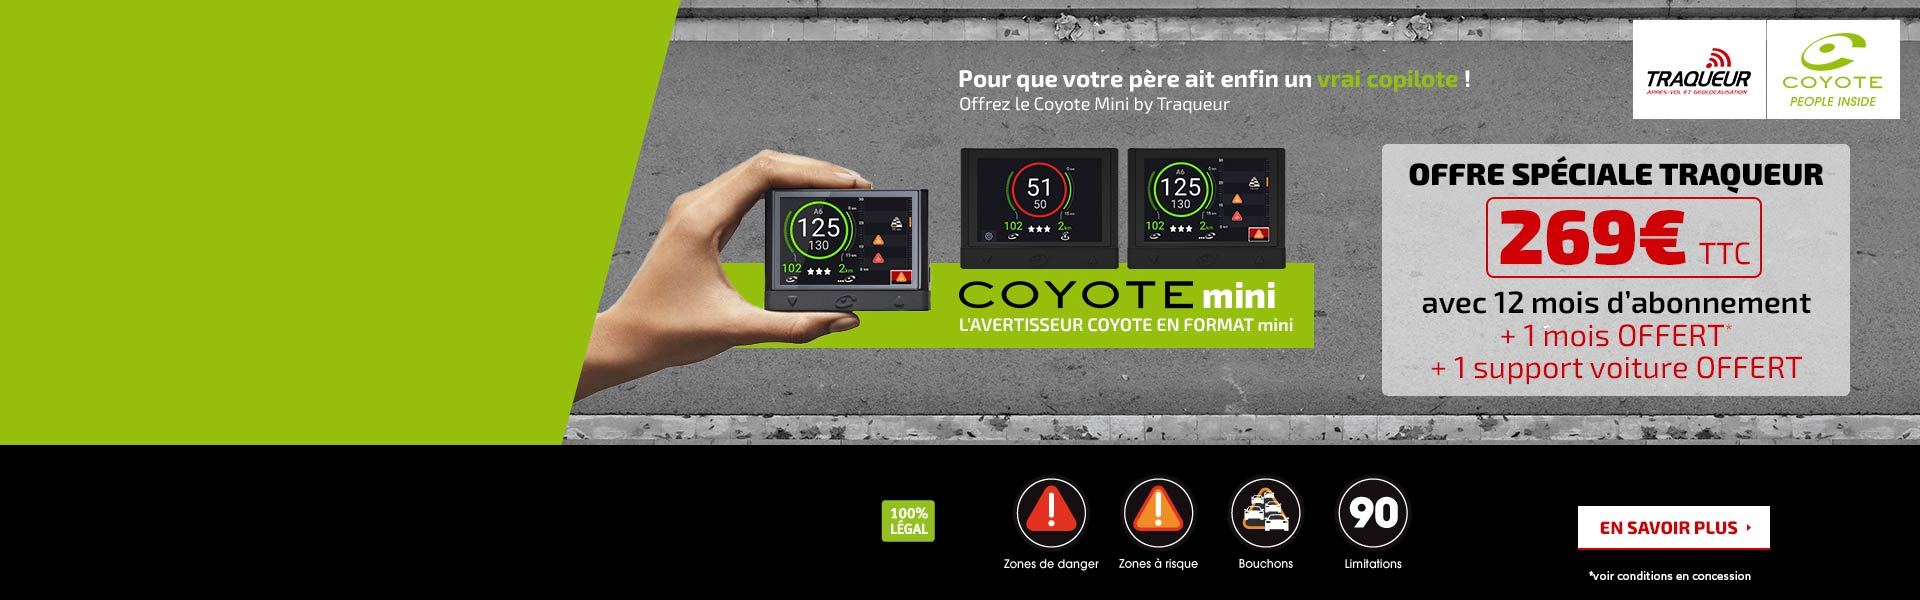 Offre Coyote